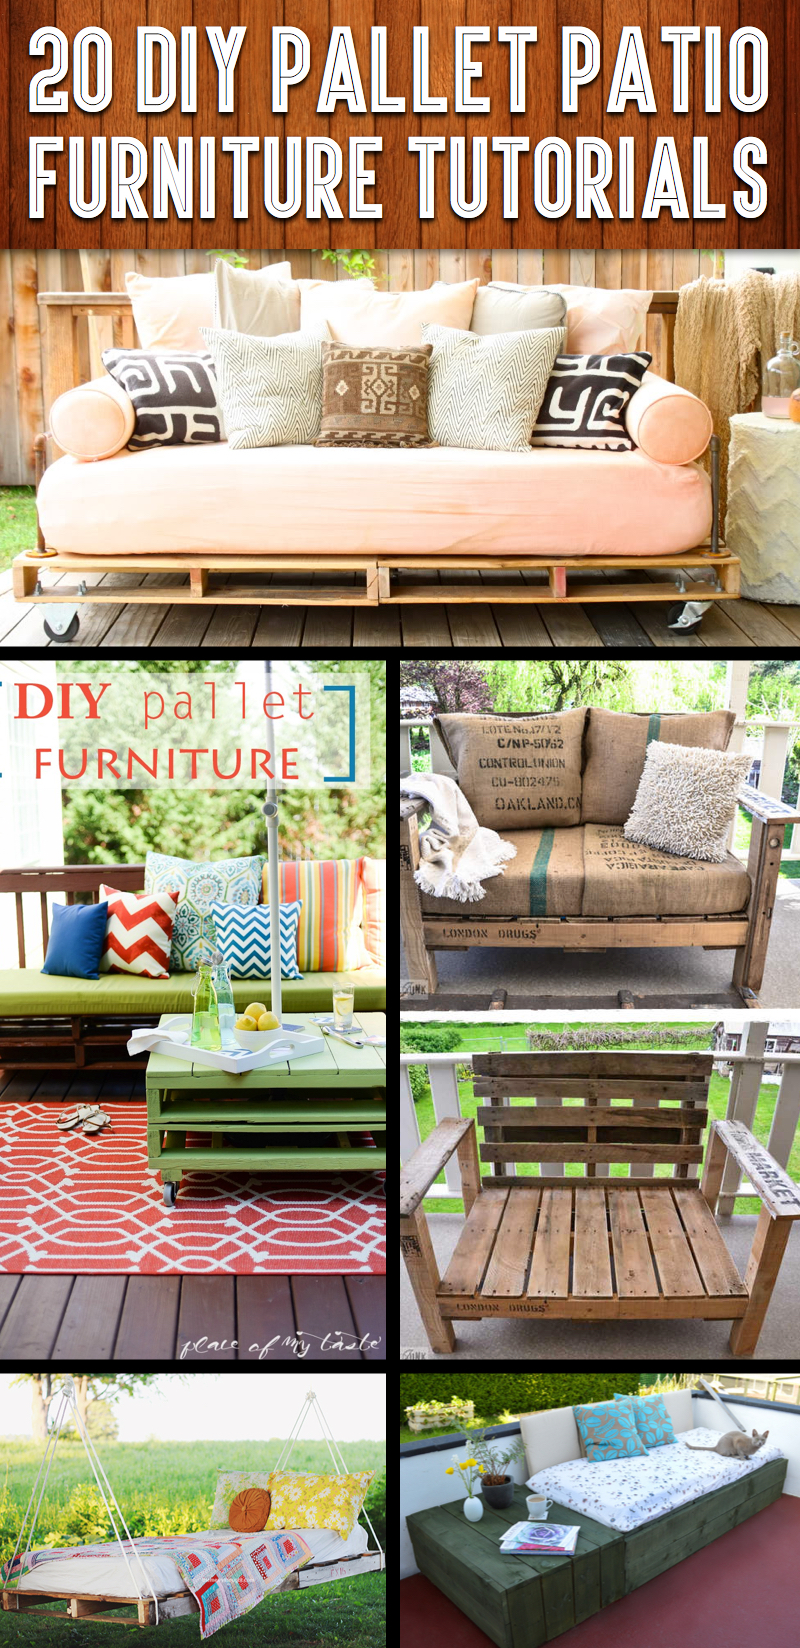 20 diy pallet patio furniture tutorials for a chic and practical outdoor patio cute diy projects - How to build an outdoor kitchen a practical terrace ...